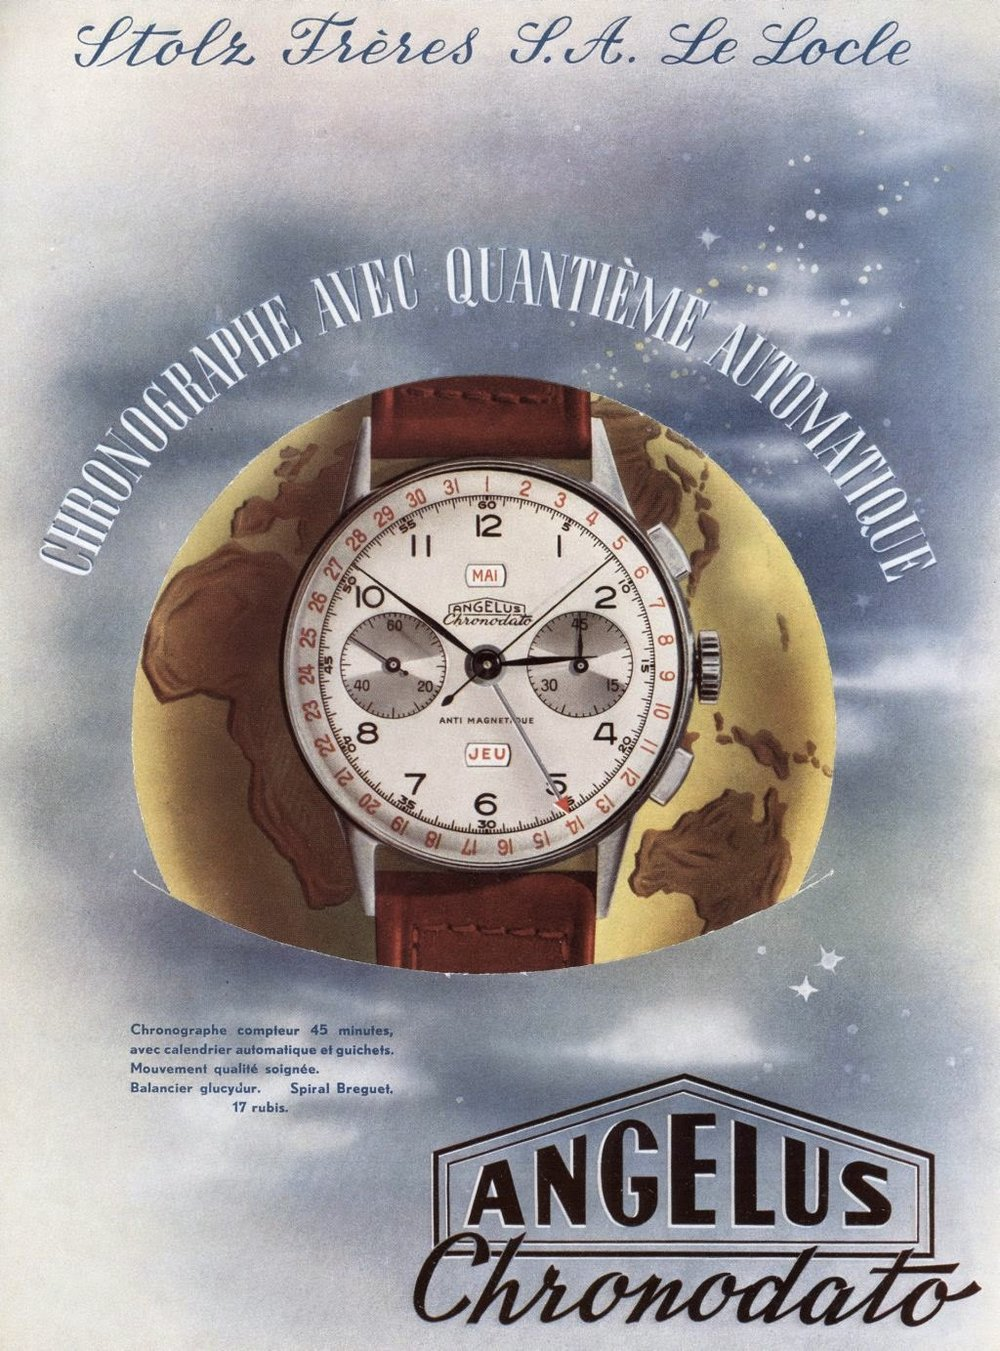 Advertising Angelus Chronodato